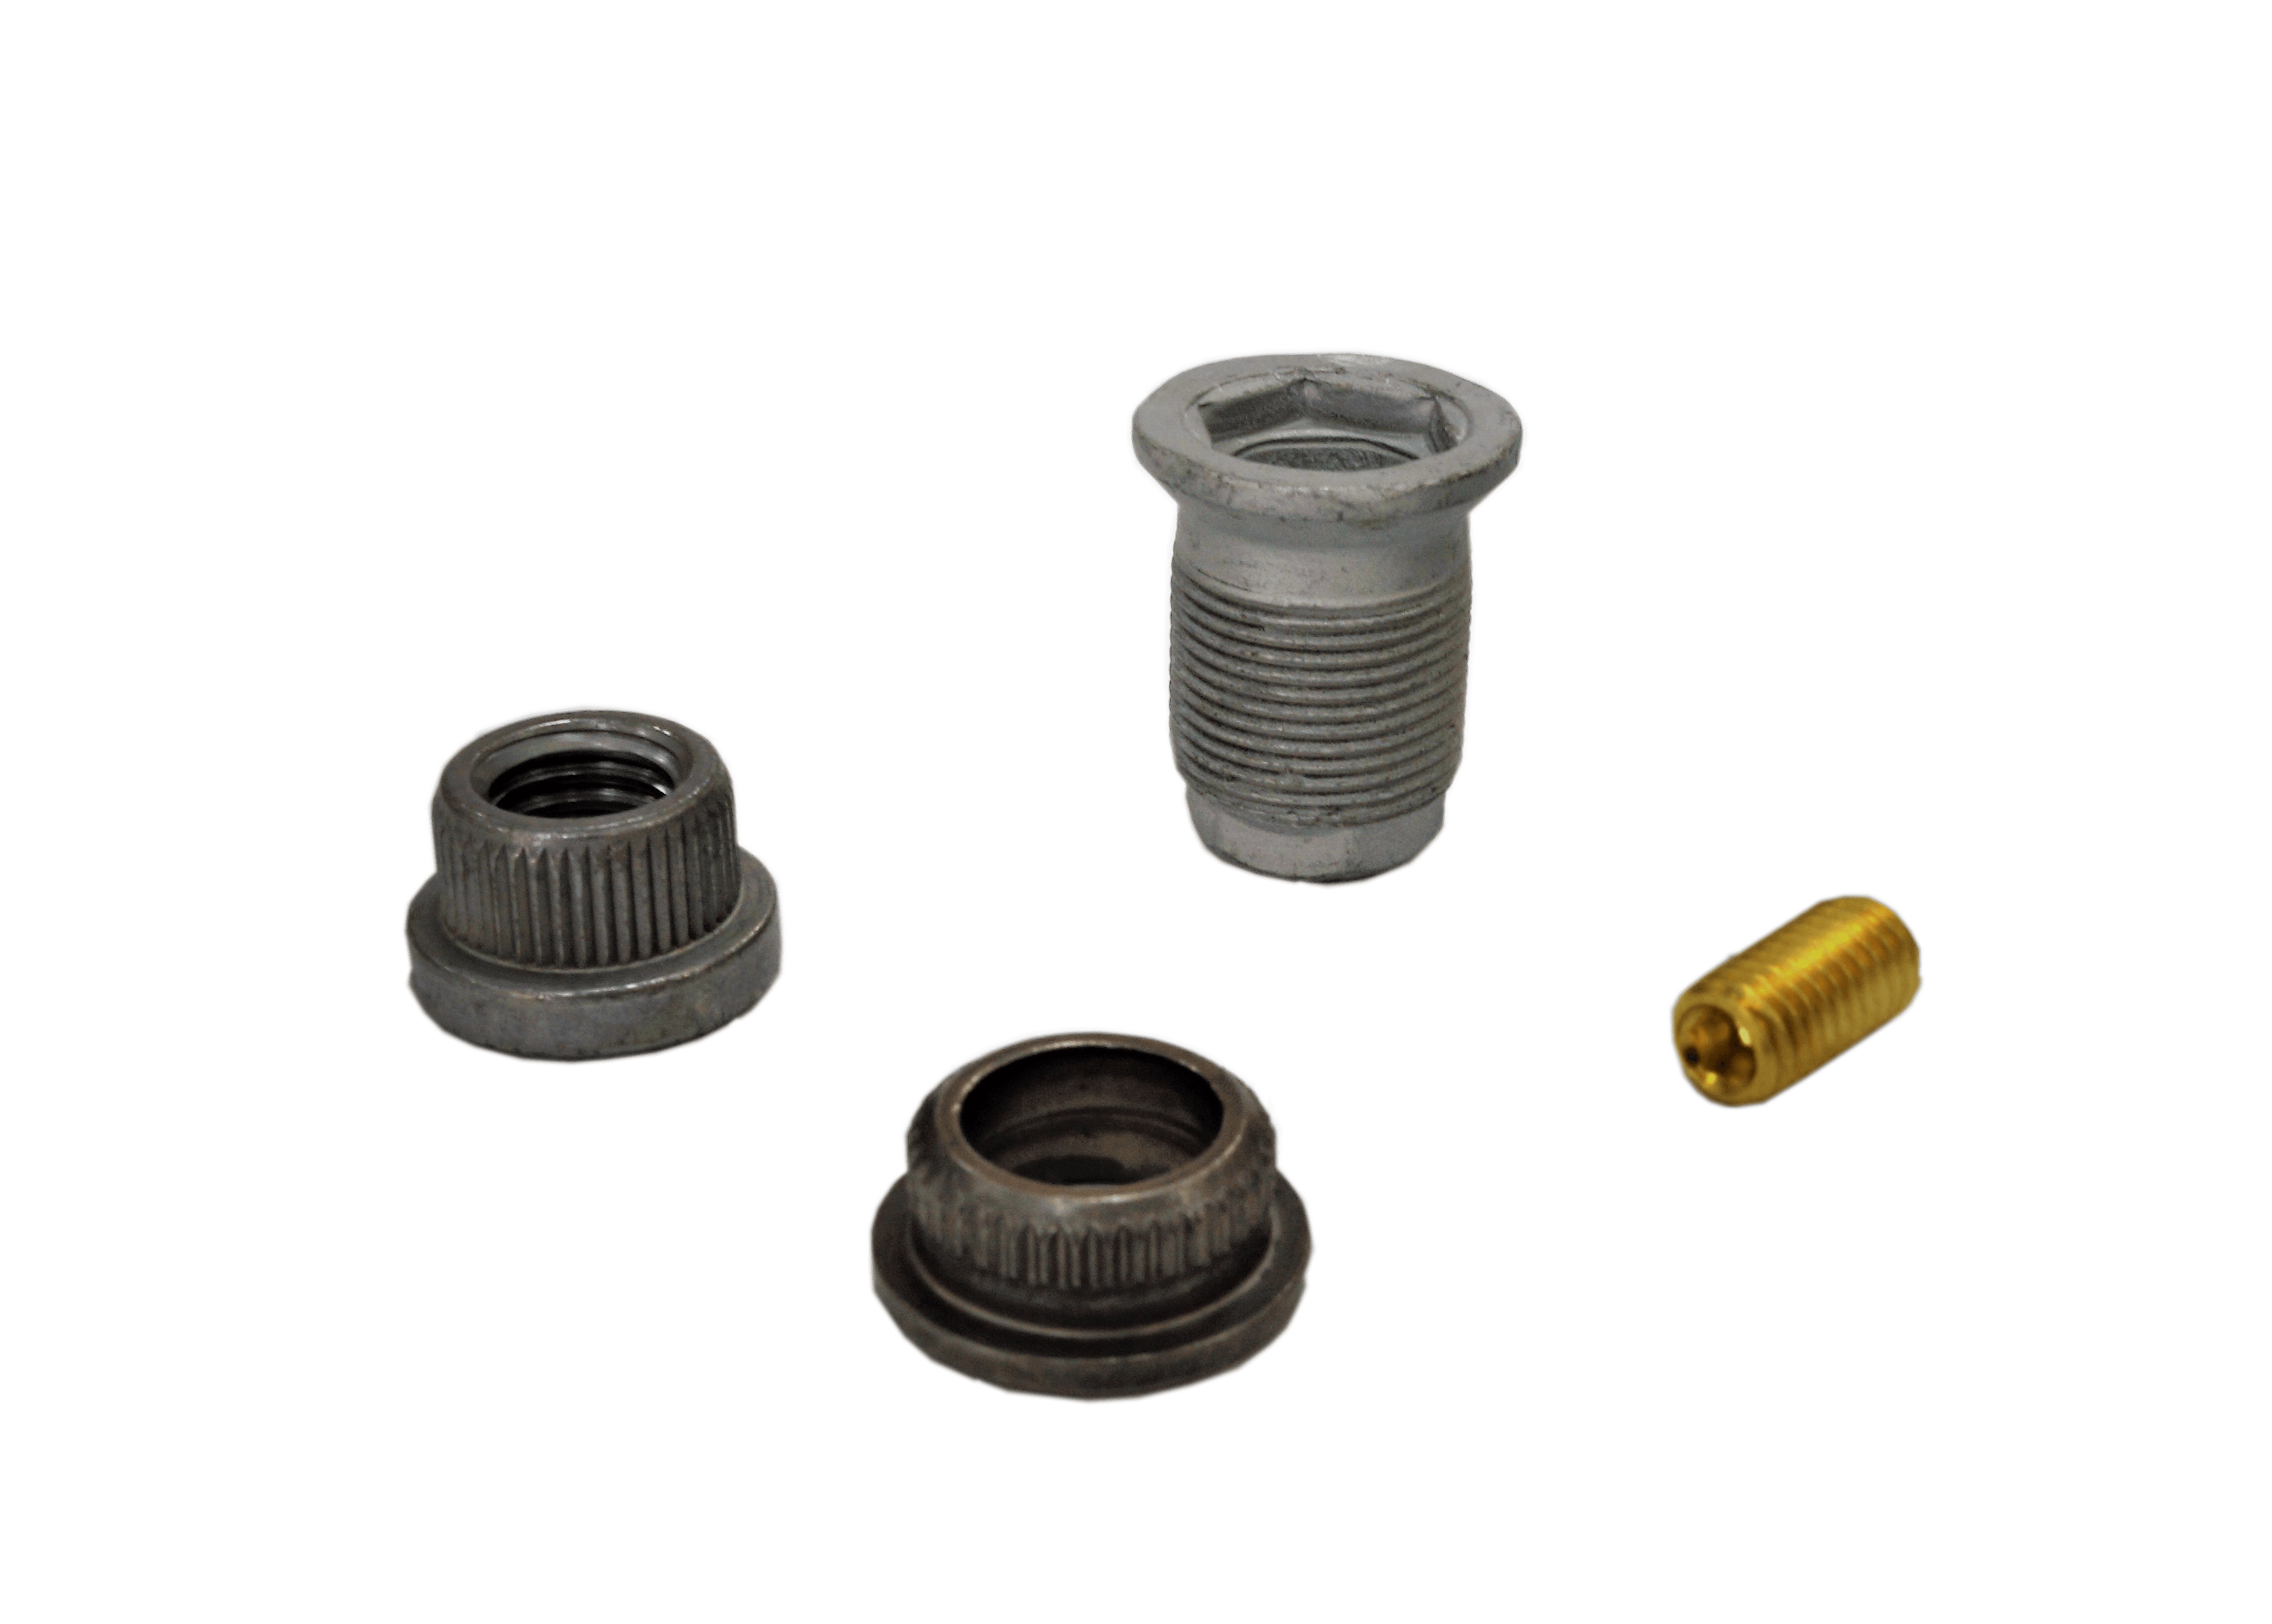 Automobile Nuts for Vehicle Fastener made by Sunny Screw Industry 三能螺栓工業股份有限公司 - MatchSupplier.com